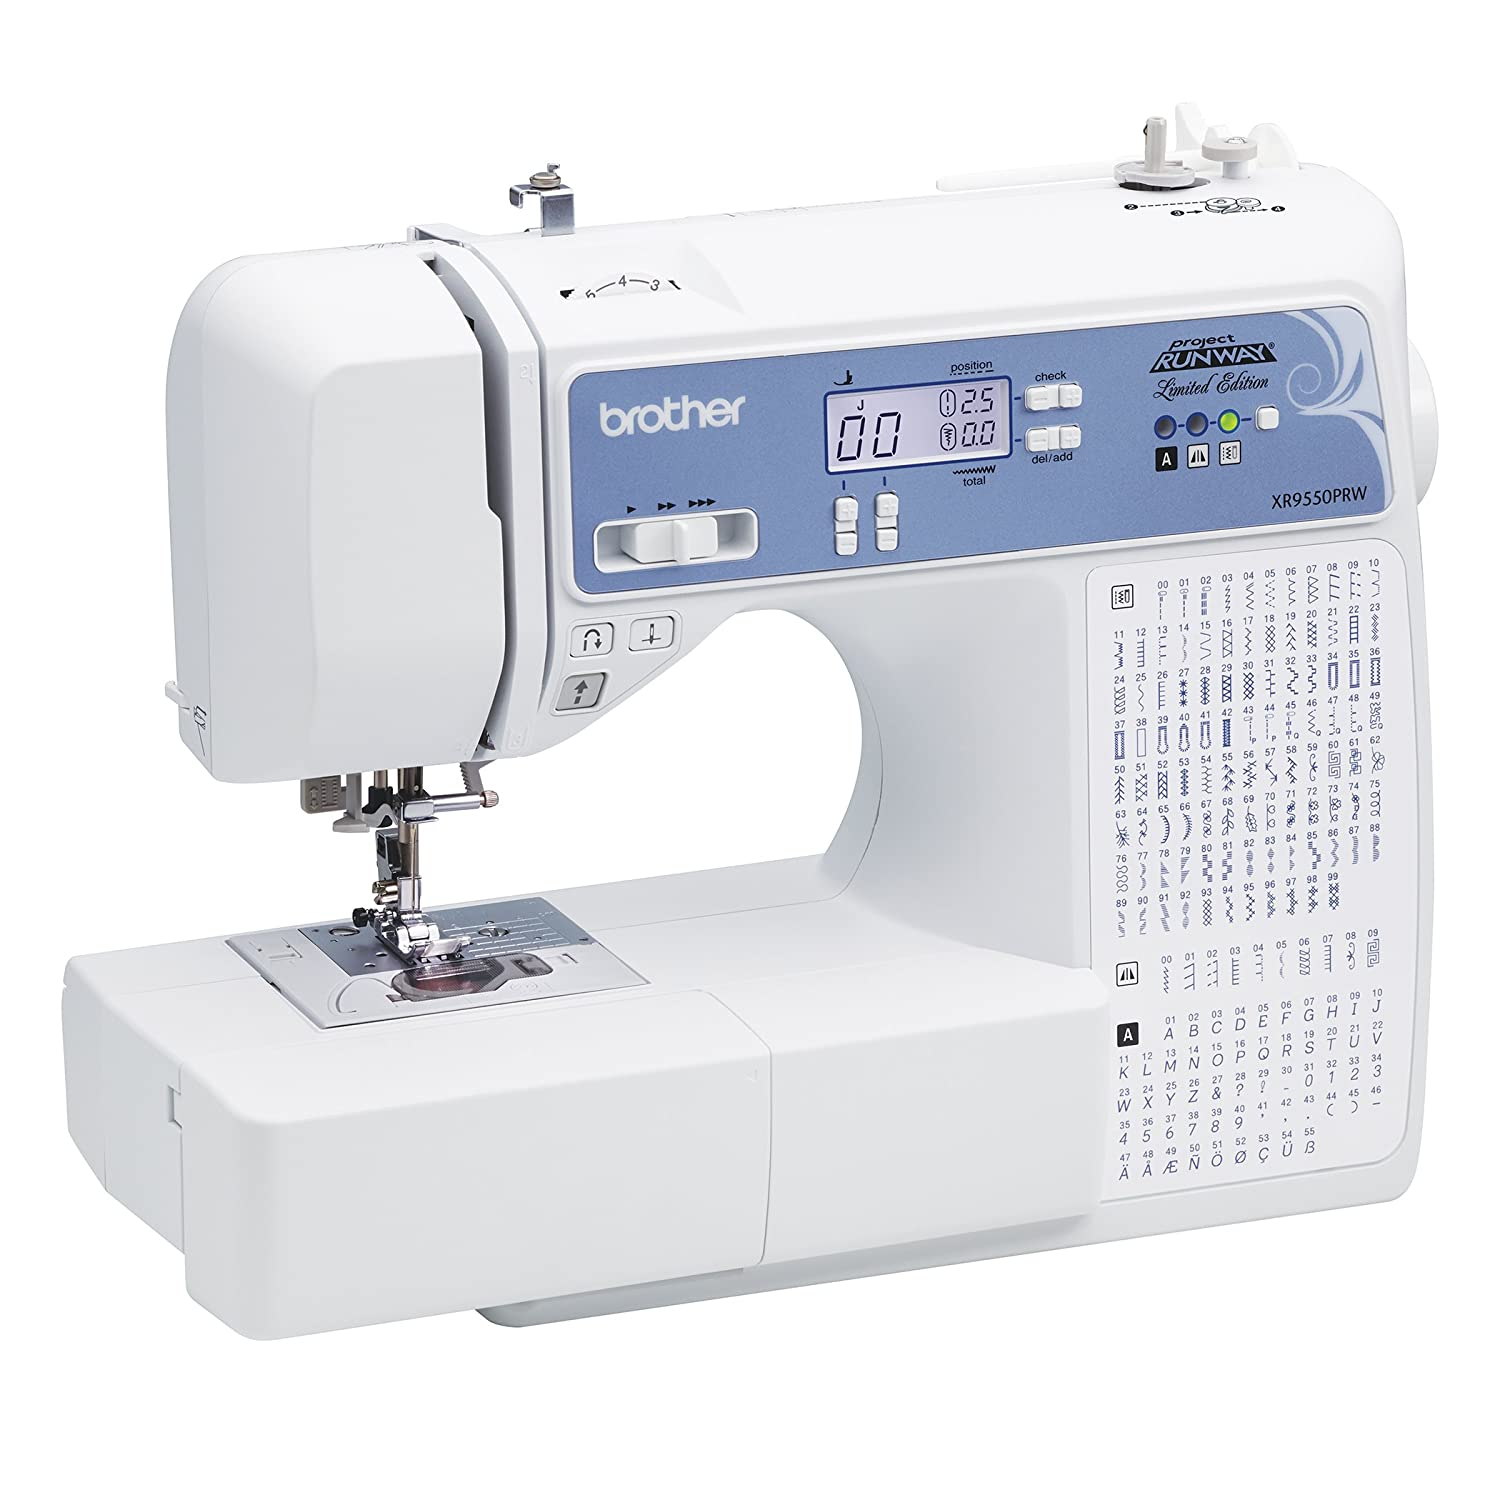 Amazon.com: Brother, Computerized Sewing Machine, XR9550PRW, Project Runway  Limited Edition, 110 Built-in Utility, LCD Screen, Hard Case